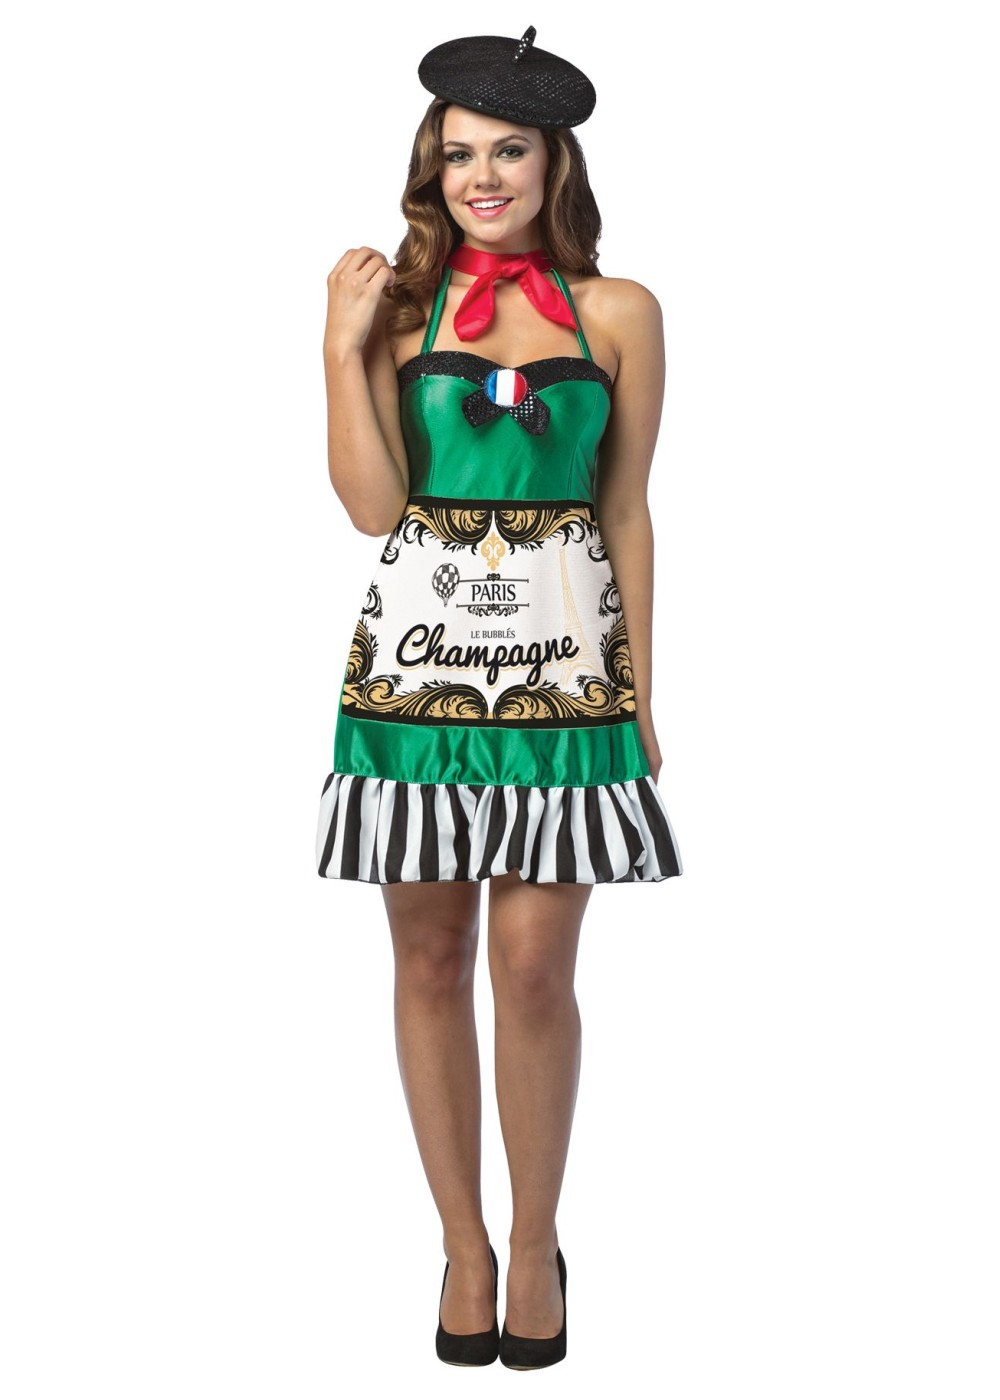 Womens Champagne Bottle Dress Funny Costumes